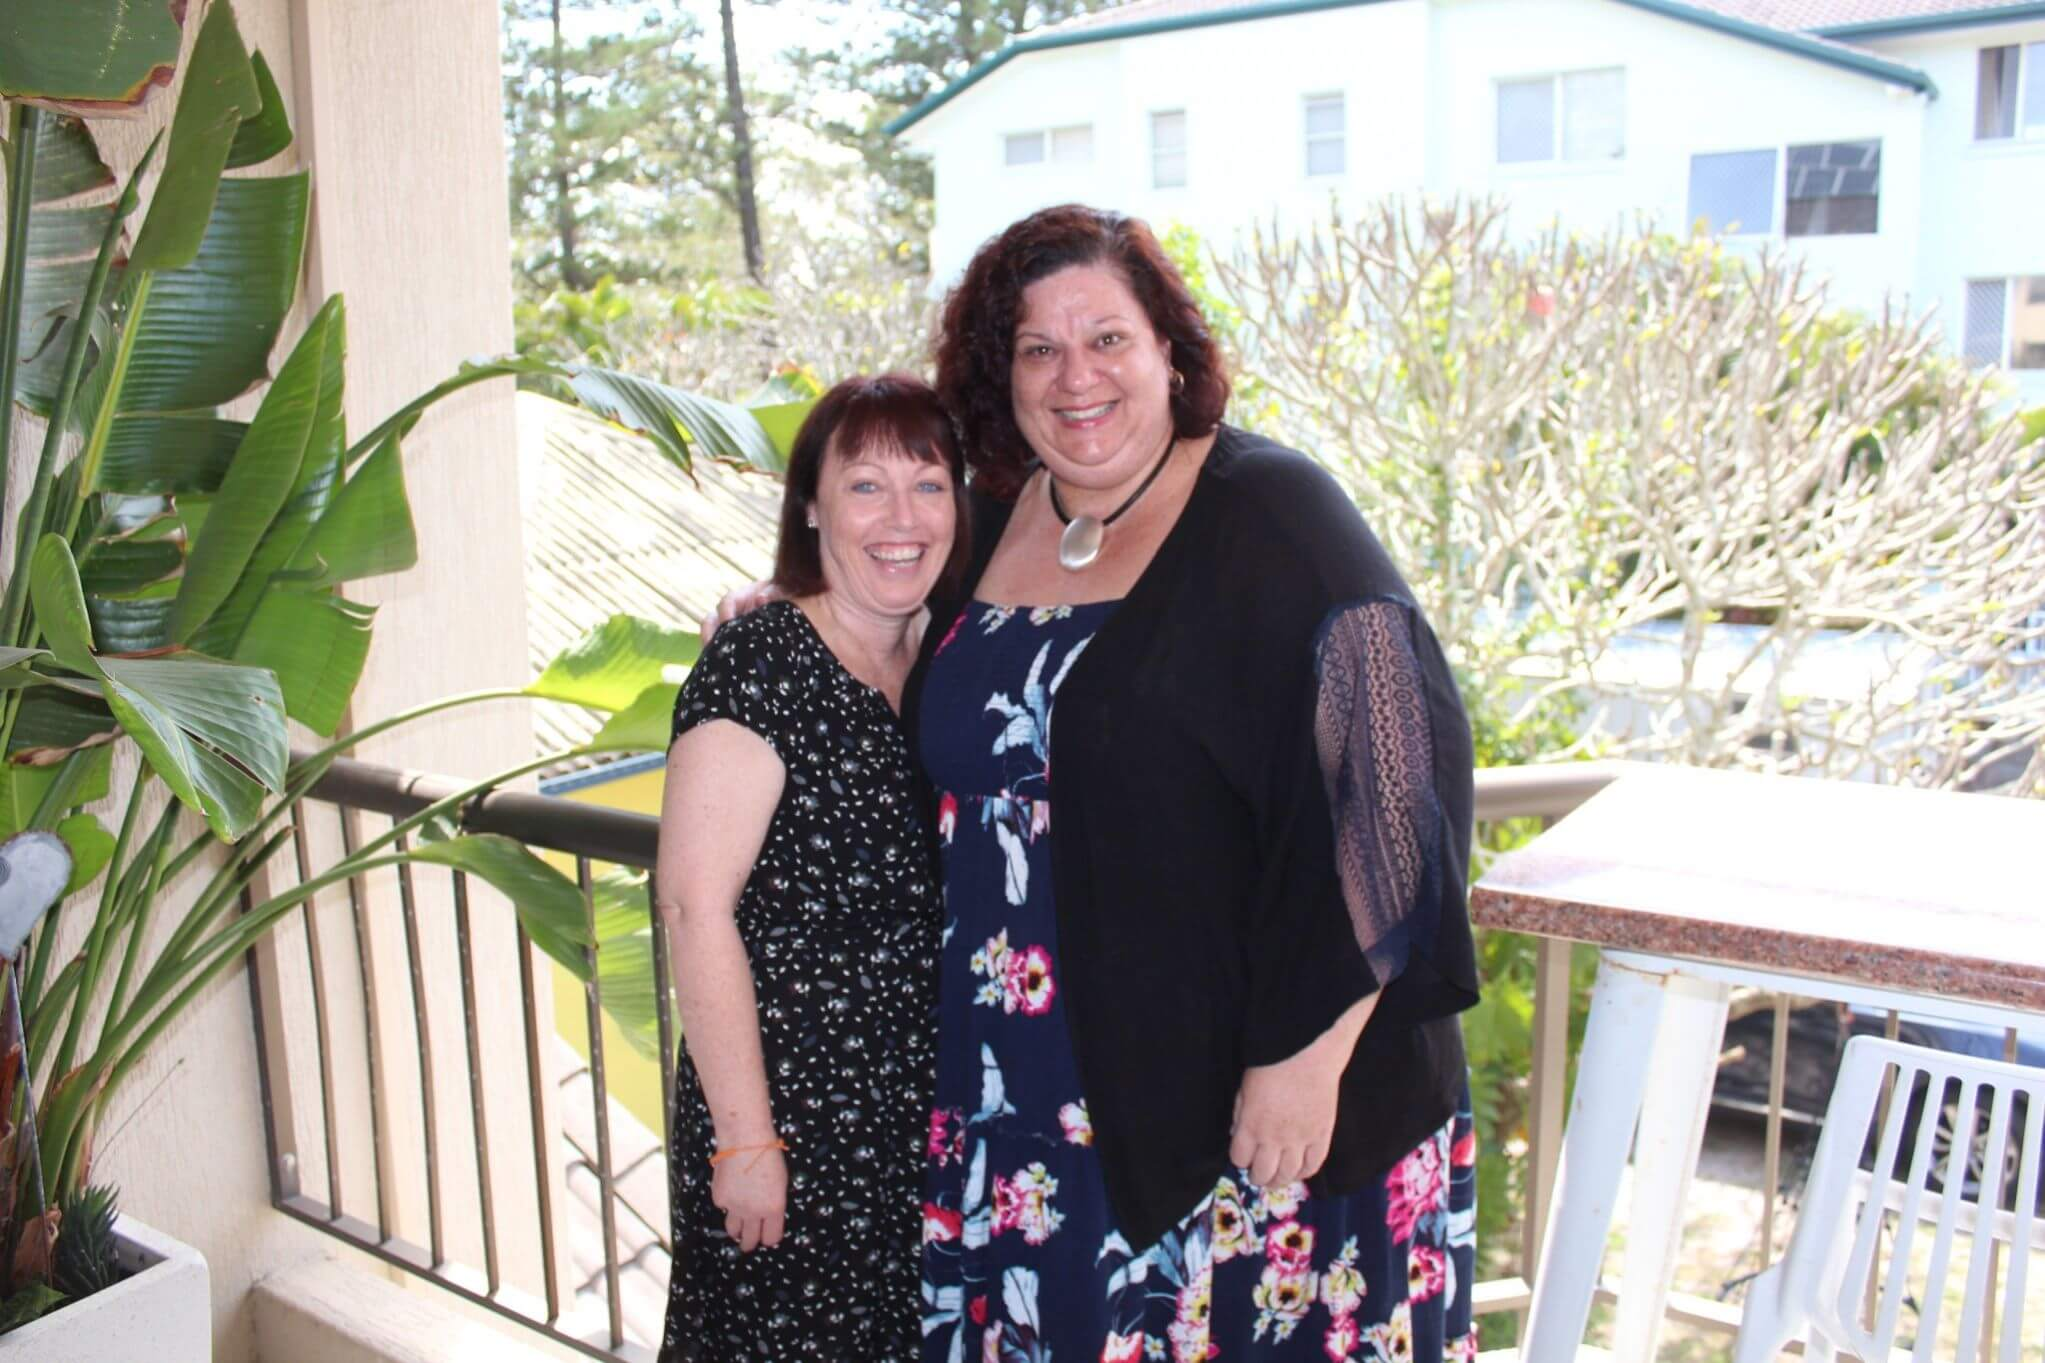 Jody and Sylvia - two women standing on a balcony smiling